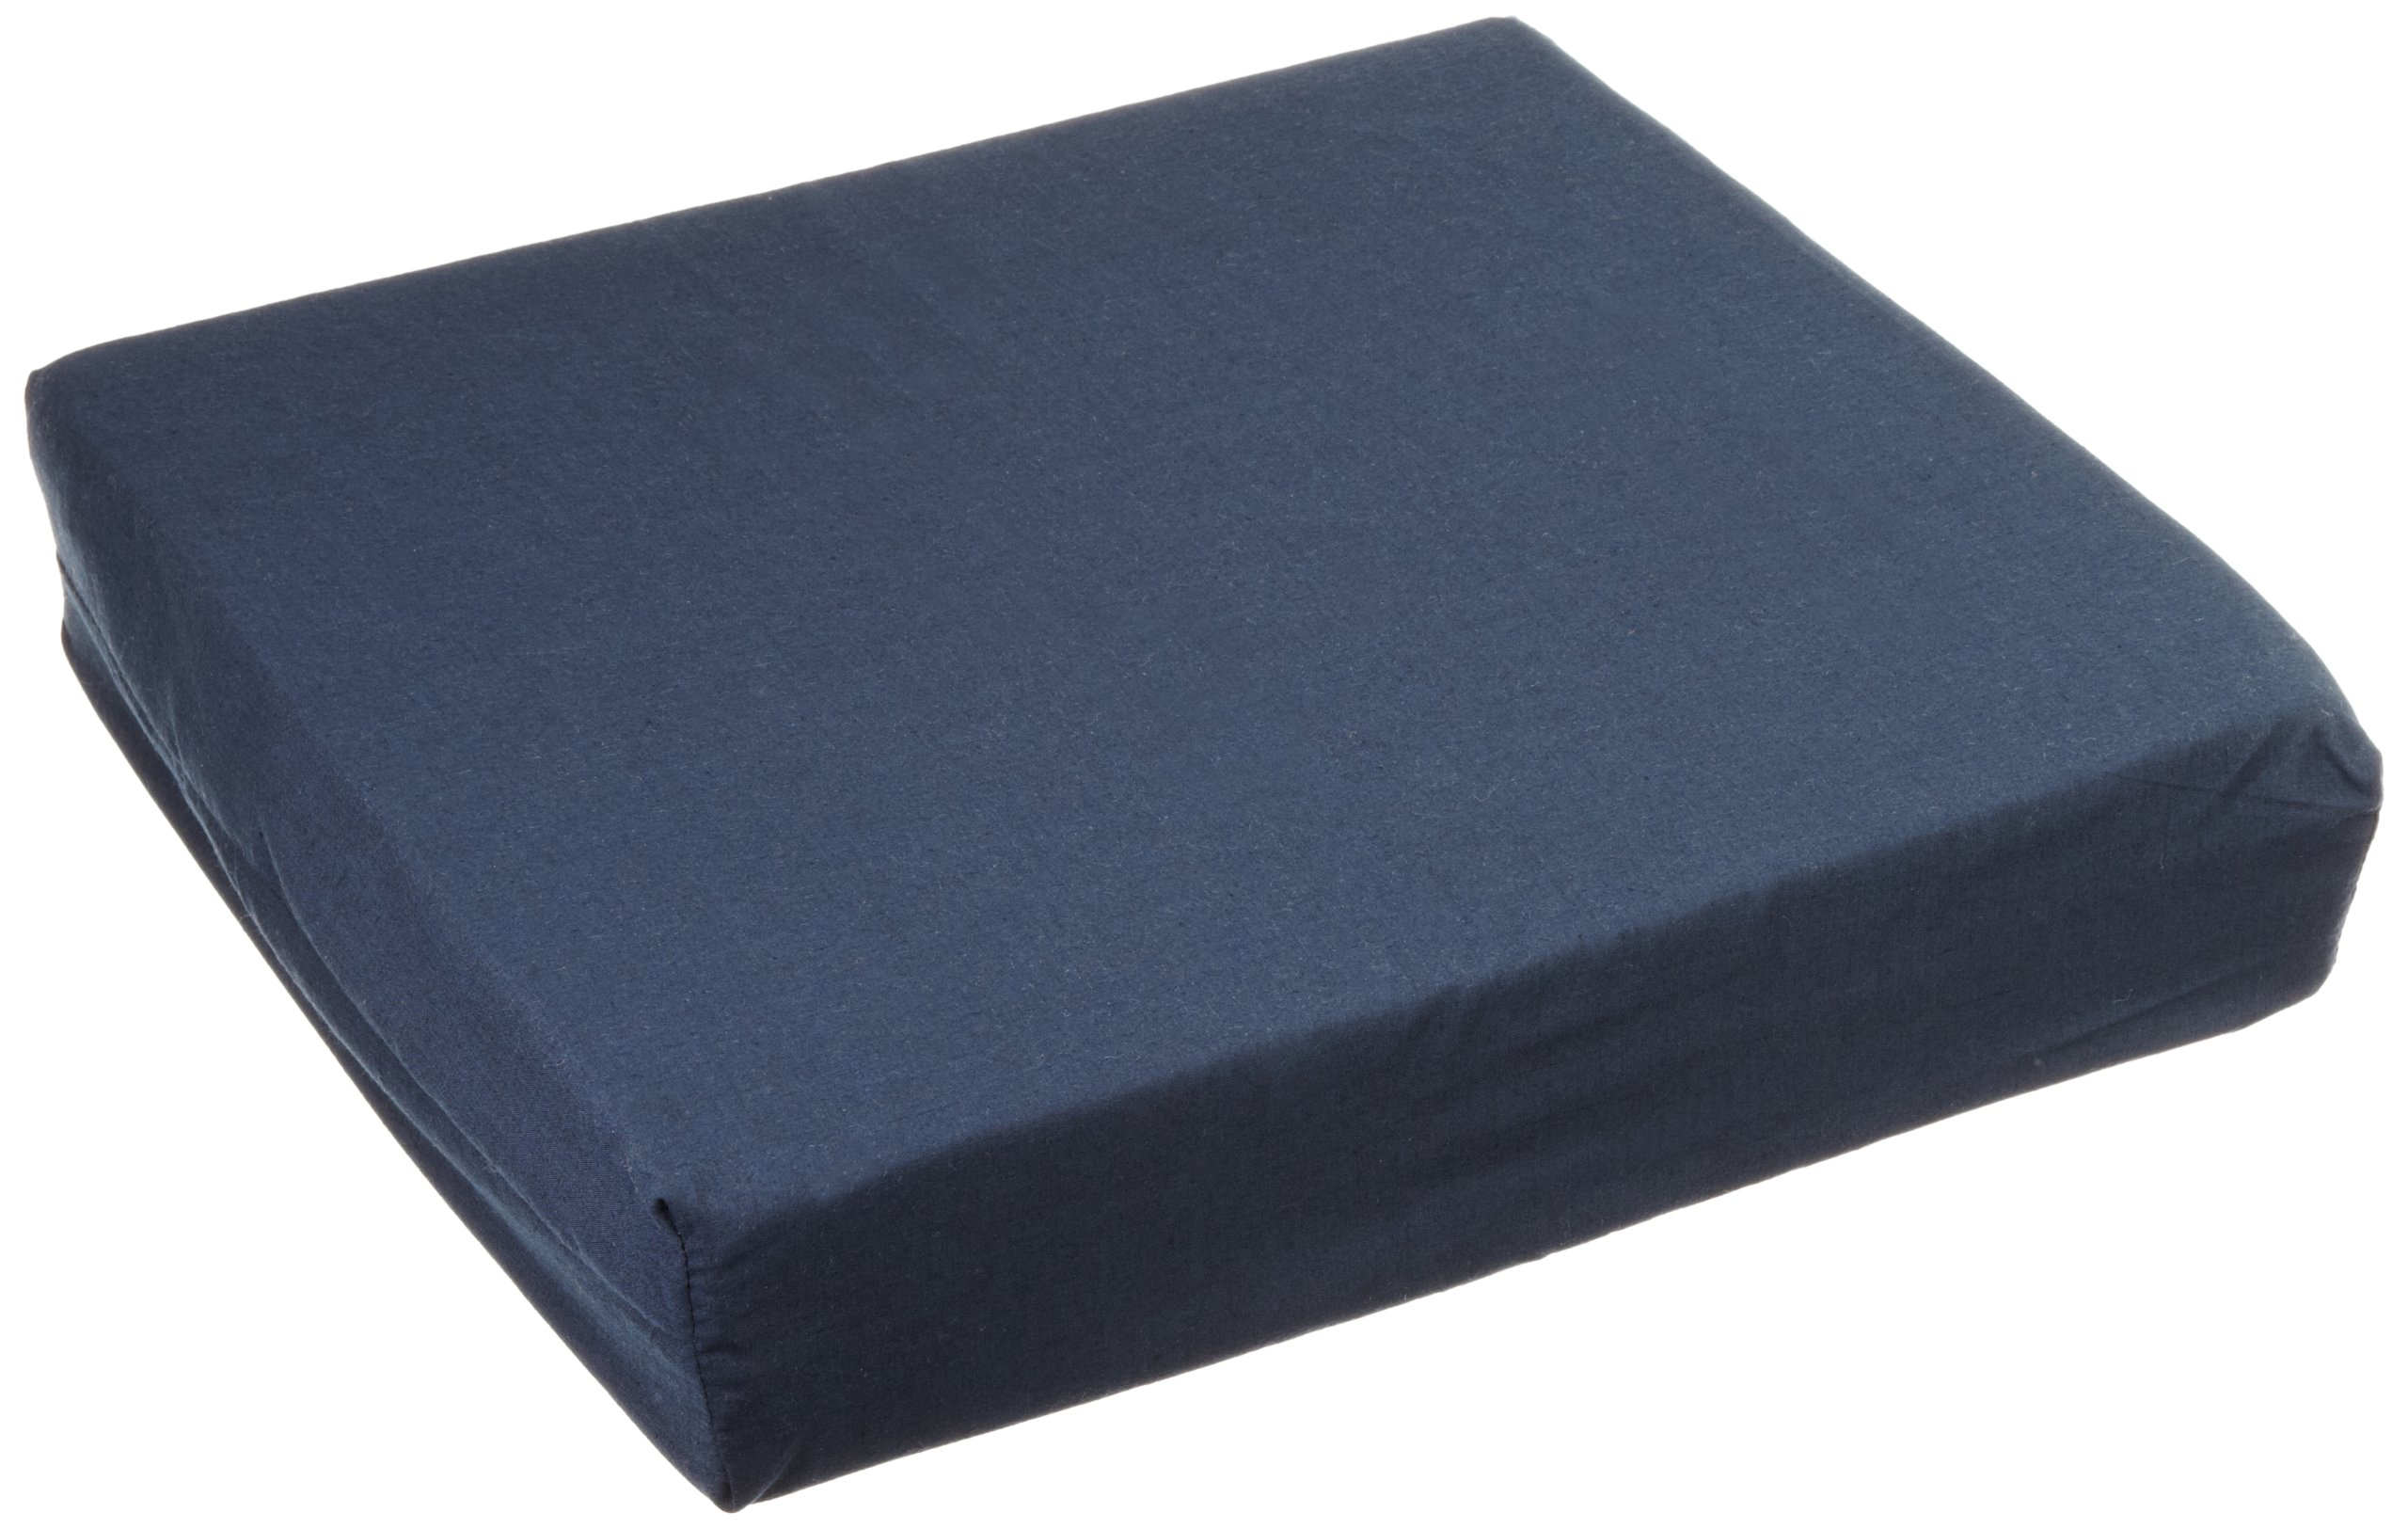 Hermell products WC4430ANV Wheelchair Cushion with Navy Polycotton Zippered Cover